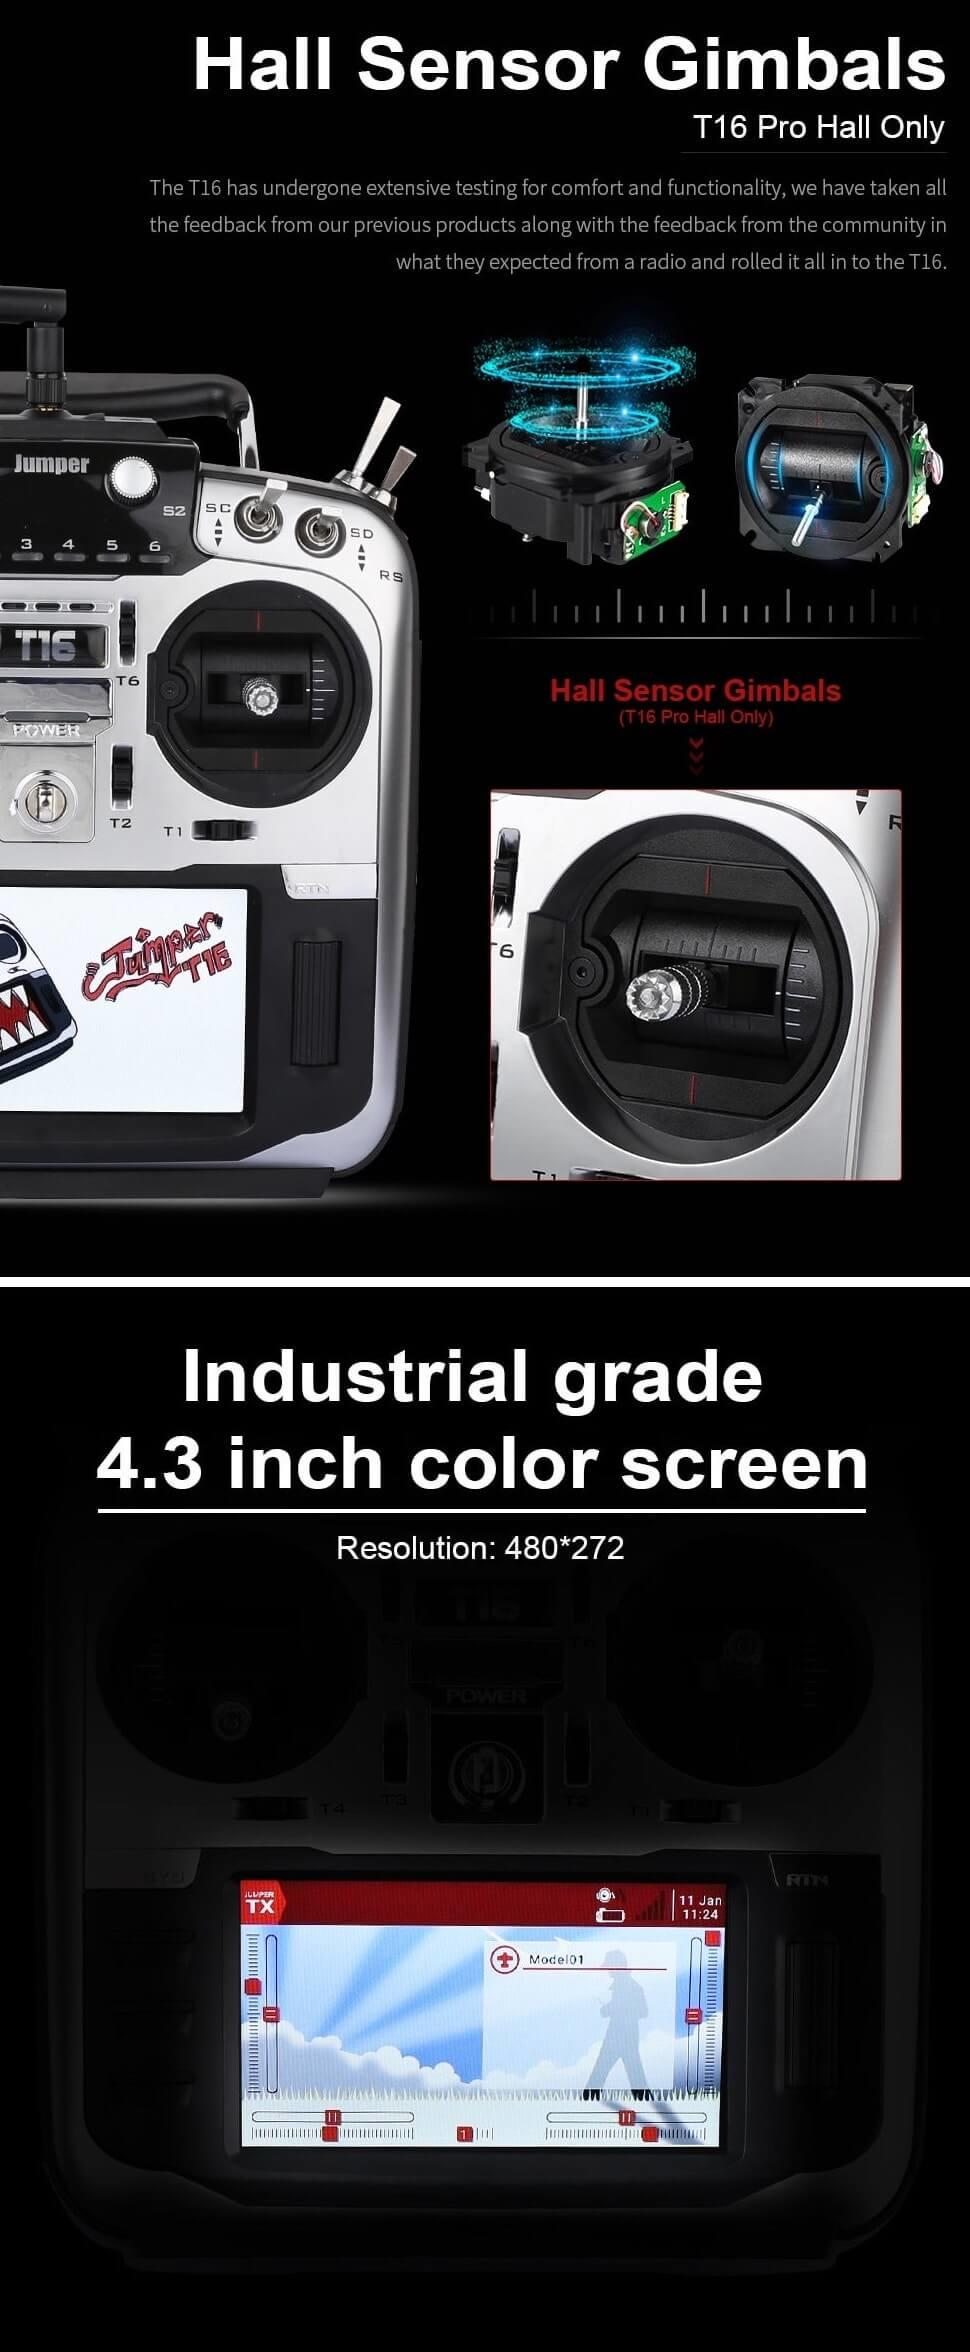 the T16 has hall sensor gimbals and LCD screen